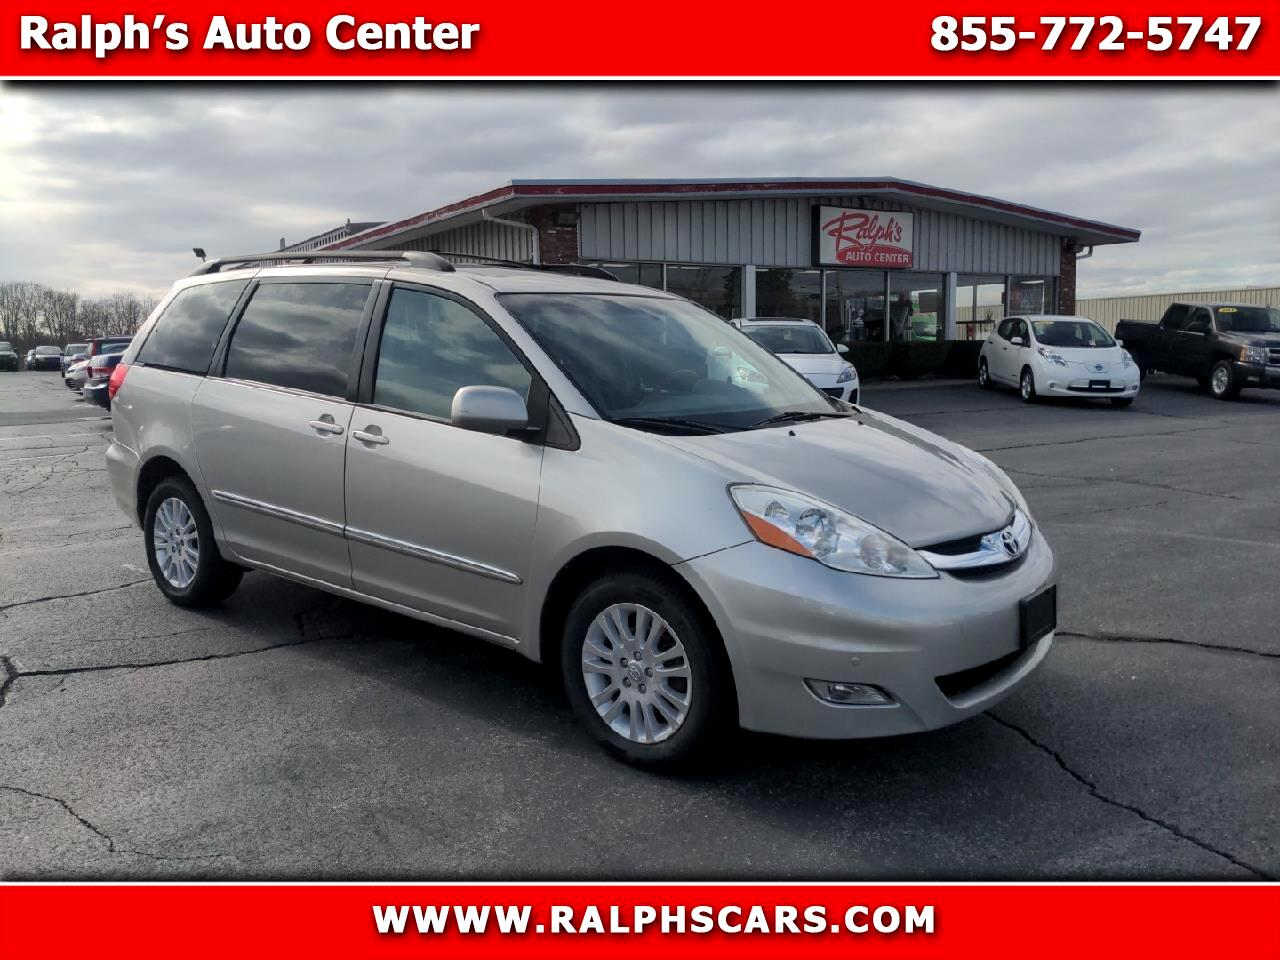 Toyota Sienna 5dr 7-Pass Van Ltd AWD (Natl) 2010